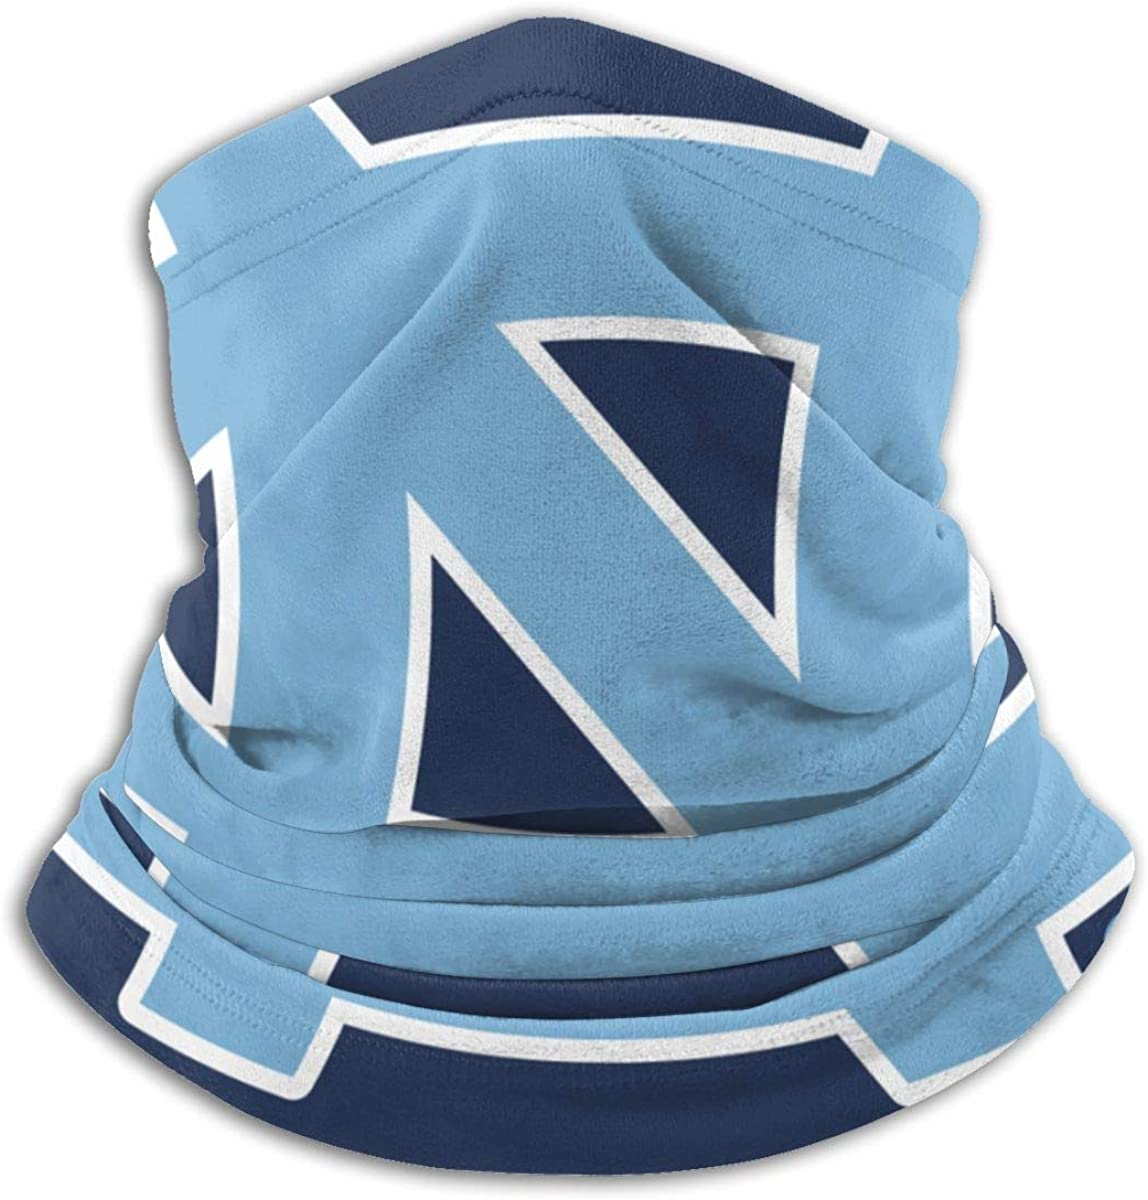 North Carolina Tar Heels Neck Gaiter Masks Thin Windproof Head Scarf Motorcycle face Nose Covers for Men Women